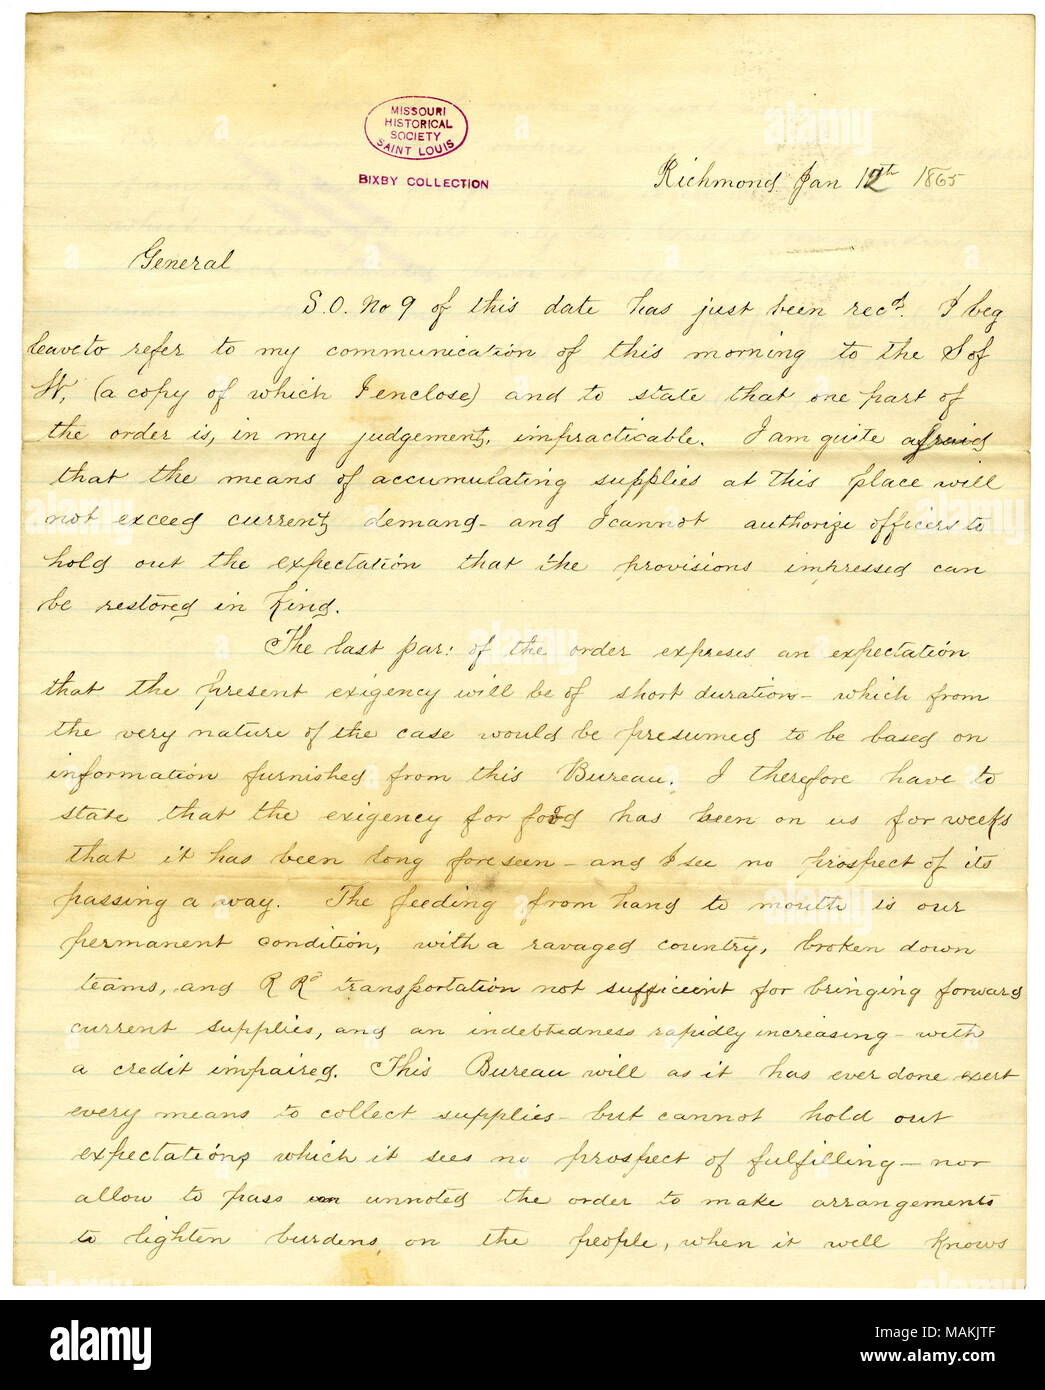 States, '?ǪI am quite afraid that the means of accumulating supplies at this place will not exceed current demand and I cannot authorize officers to hold out the expectation that the provisions impressed can be restored?Ǫ' Title: Copy of letter of L.B. Northrop, Richmond, to General S. Cooper, Richmond, Va., January 12, 1865  . 12 January 1865. Northrop, Lucius Bellinger, 1811-1894 - Stock Image